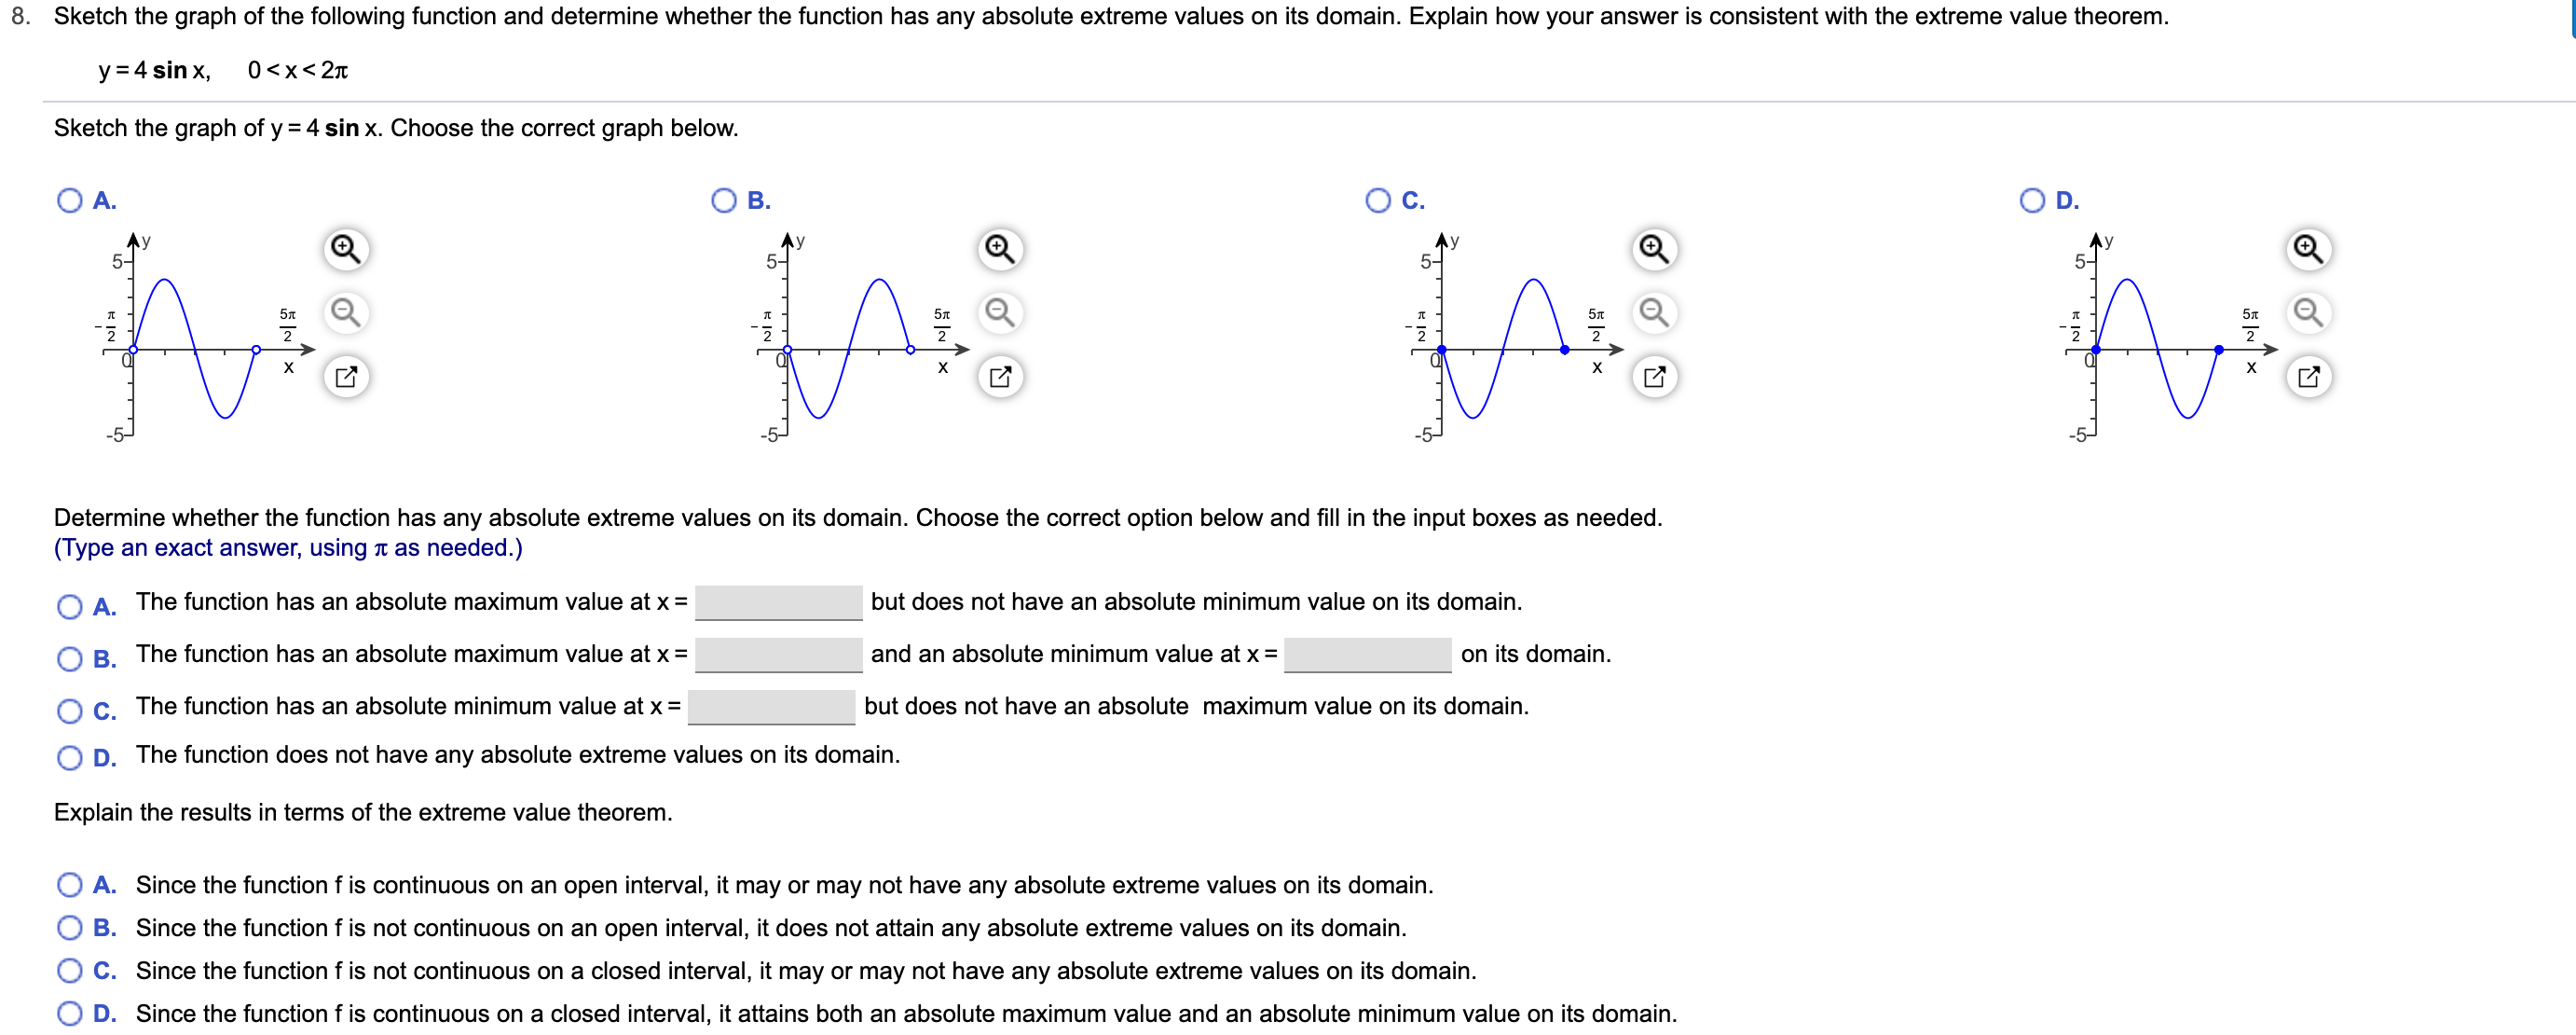 8. Sketch the graph of the following function and determine whether the function has any absolute extreme values on its domain. Explain how your answer is consistent with the extreme value theorem. y 4 sin x, 0 <x<2Tt Sketch the graph of y 4 sinx. Choose the correct graph below. O A. Ос. В. D. y 5- 57t х х х X Determine whether the function has any absolute extreme values on its domain. Choose the correct option below and fill in the input boxes as needed. (Type an exact answer, using n as needed.) O A. The function has an absolute maximum value at x = but does not have an absolute minimum value on its domain. on its domain. B. The function has an absolute maximum value at x= and an absolute minimum value at x = but does not have an absolute maximum value on its domain C. The function has an absolute minimum value at x = D. The function does not have any absolute extreme values on its domain. Explain the results in terms of the extreme value theorem. O A. Since the function f is continuous on an open interval, it may or may not have any absolute extreme values on its domain. B. Since the function f is not continuous on an open interval, it does not attain any absolute extreme values on its domain C. Since the function f is not continuous on a closed interval, it may or may not have any absolute extreme values on its domain. D. Since the function f is continuous on a closed interval, it attains both an absolute maximum value and an absolute minimum value on its domain.